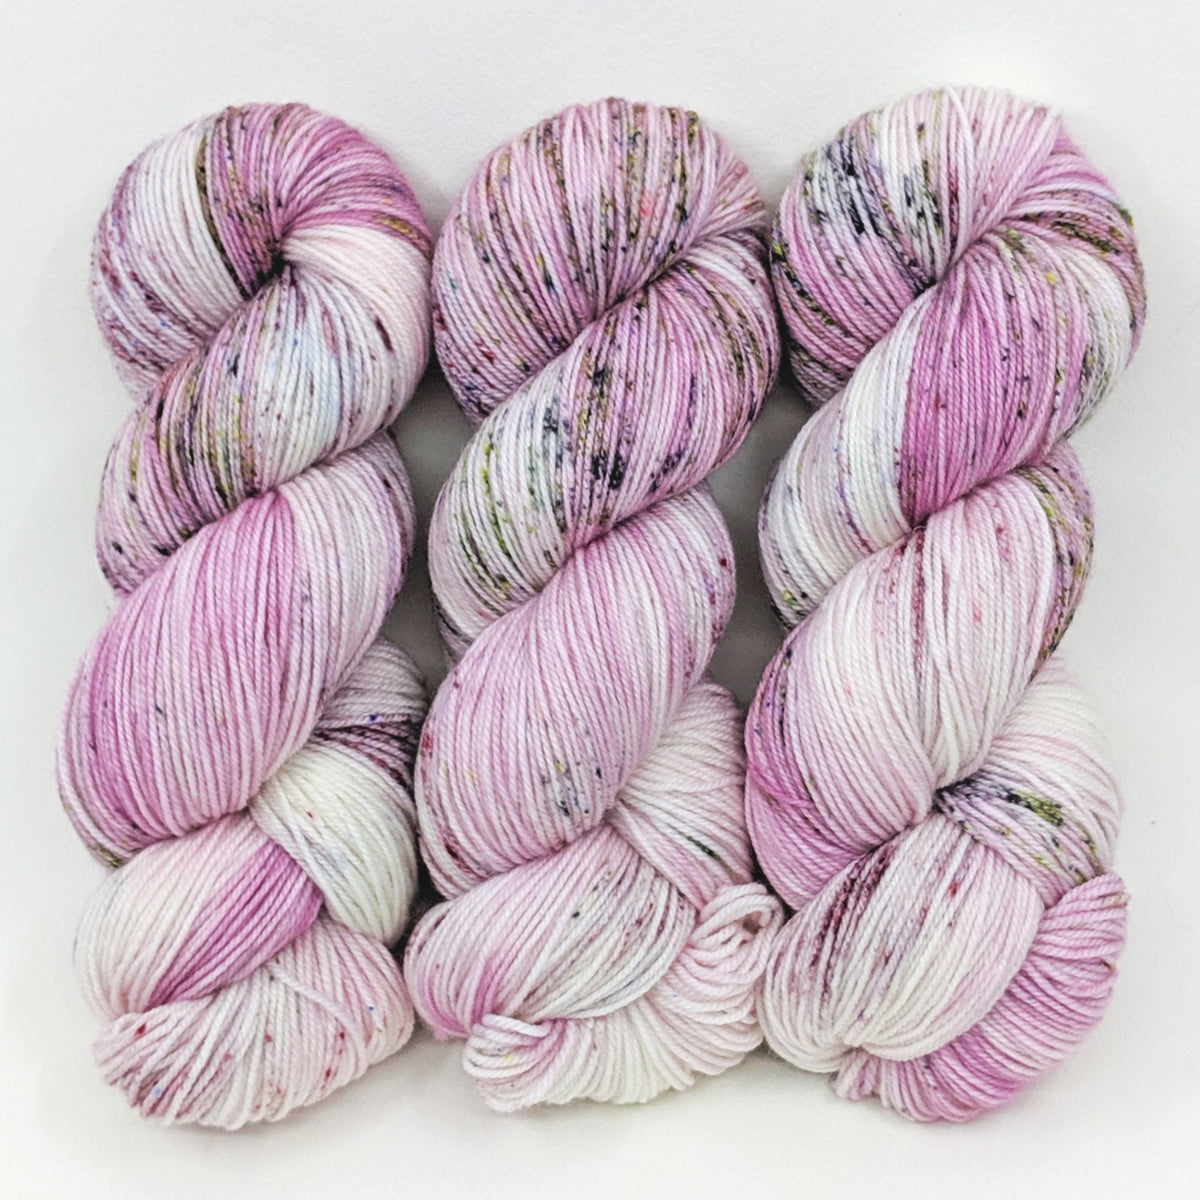 Tiny Orchid - Merino Silk Fingering - Dyed Stock